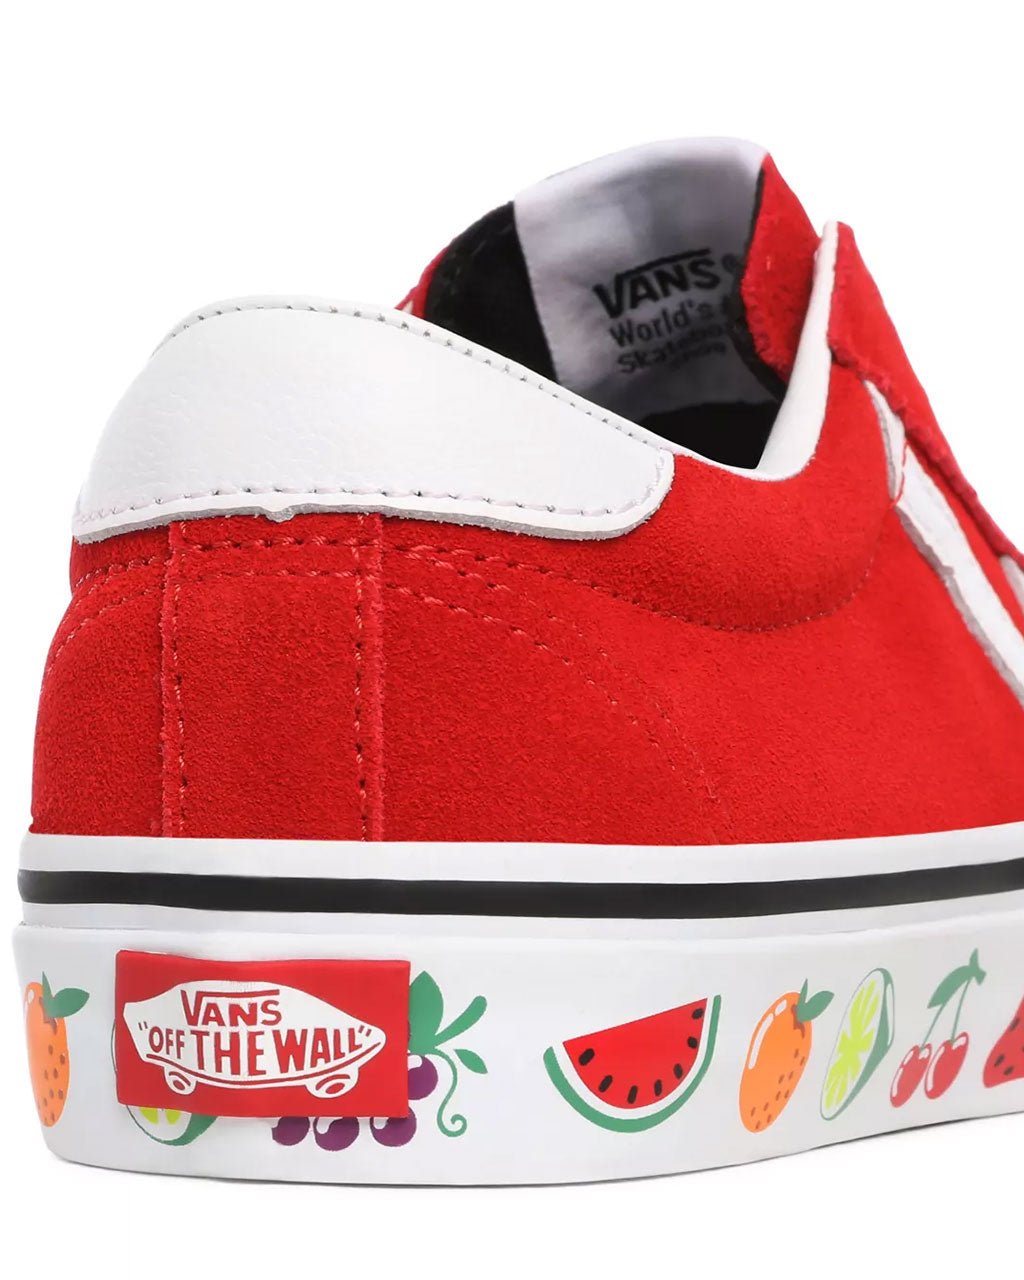 detailed view of red vans sport with a fruit design on sidewall